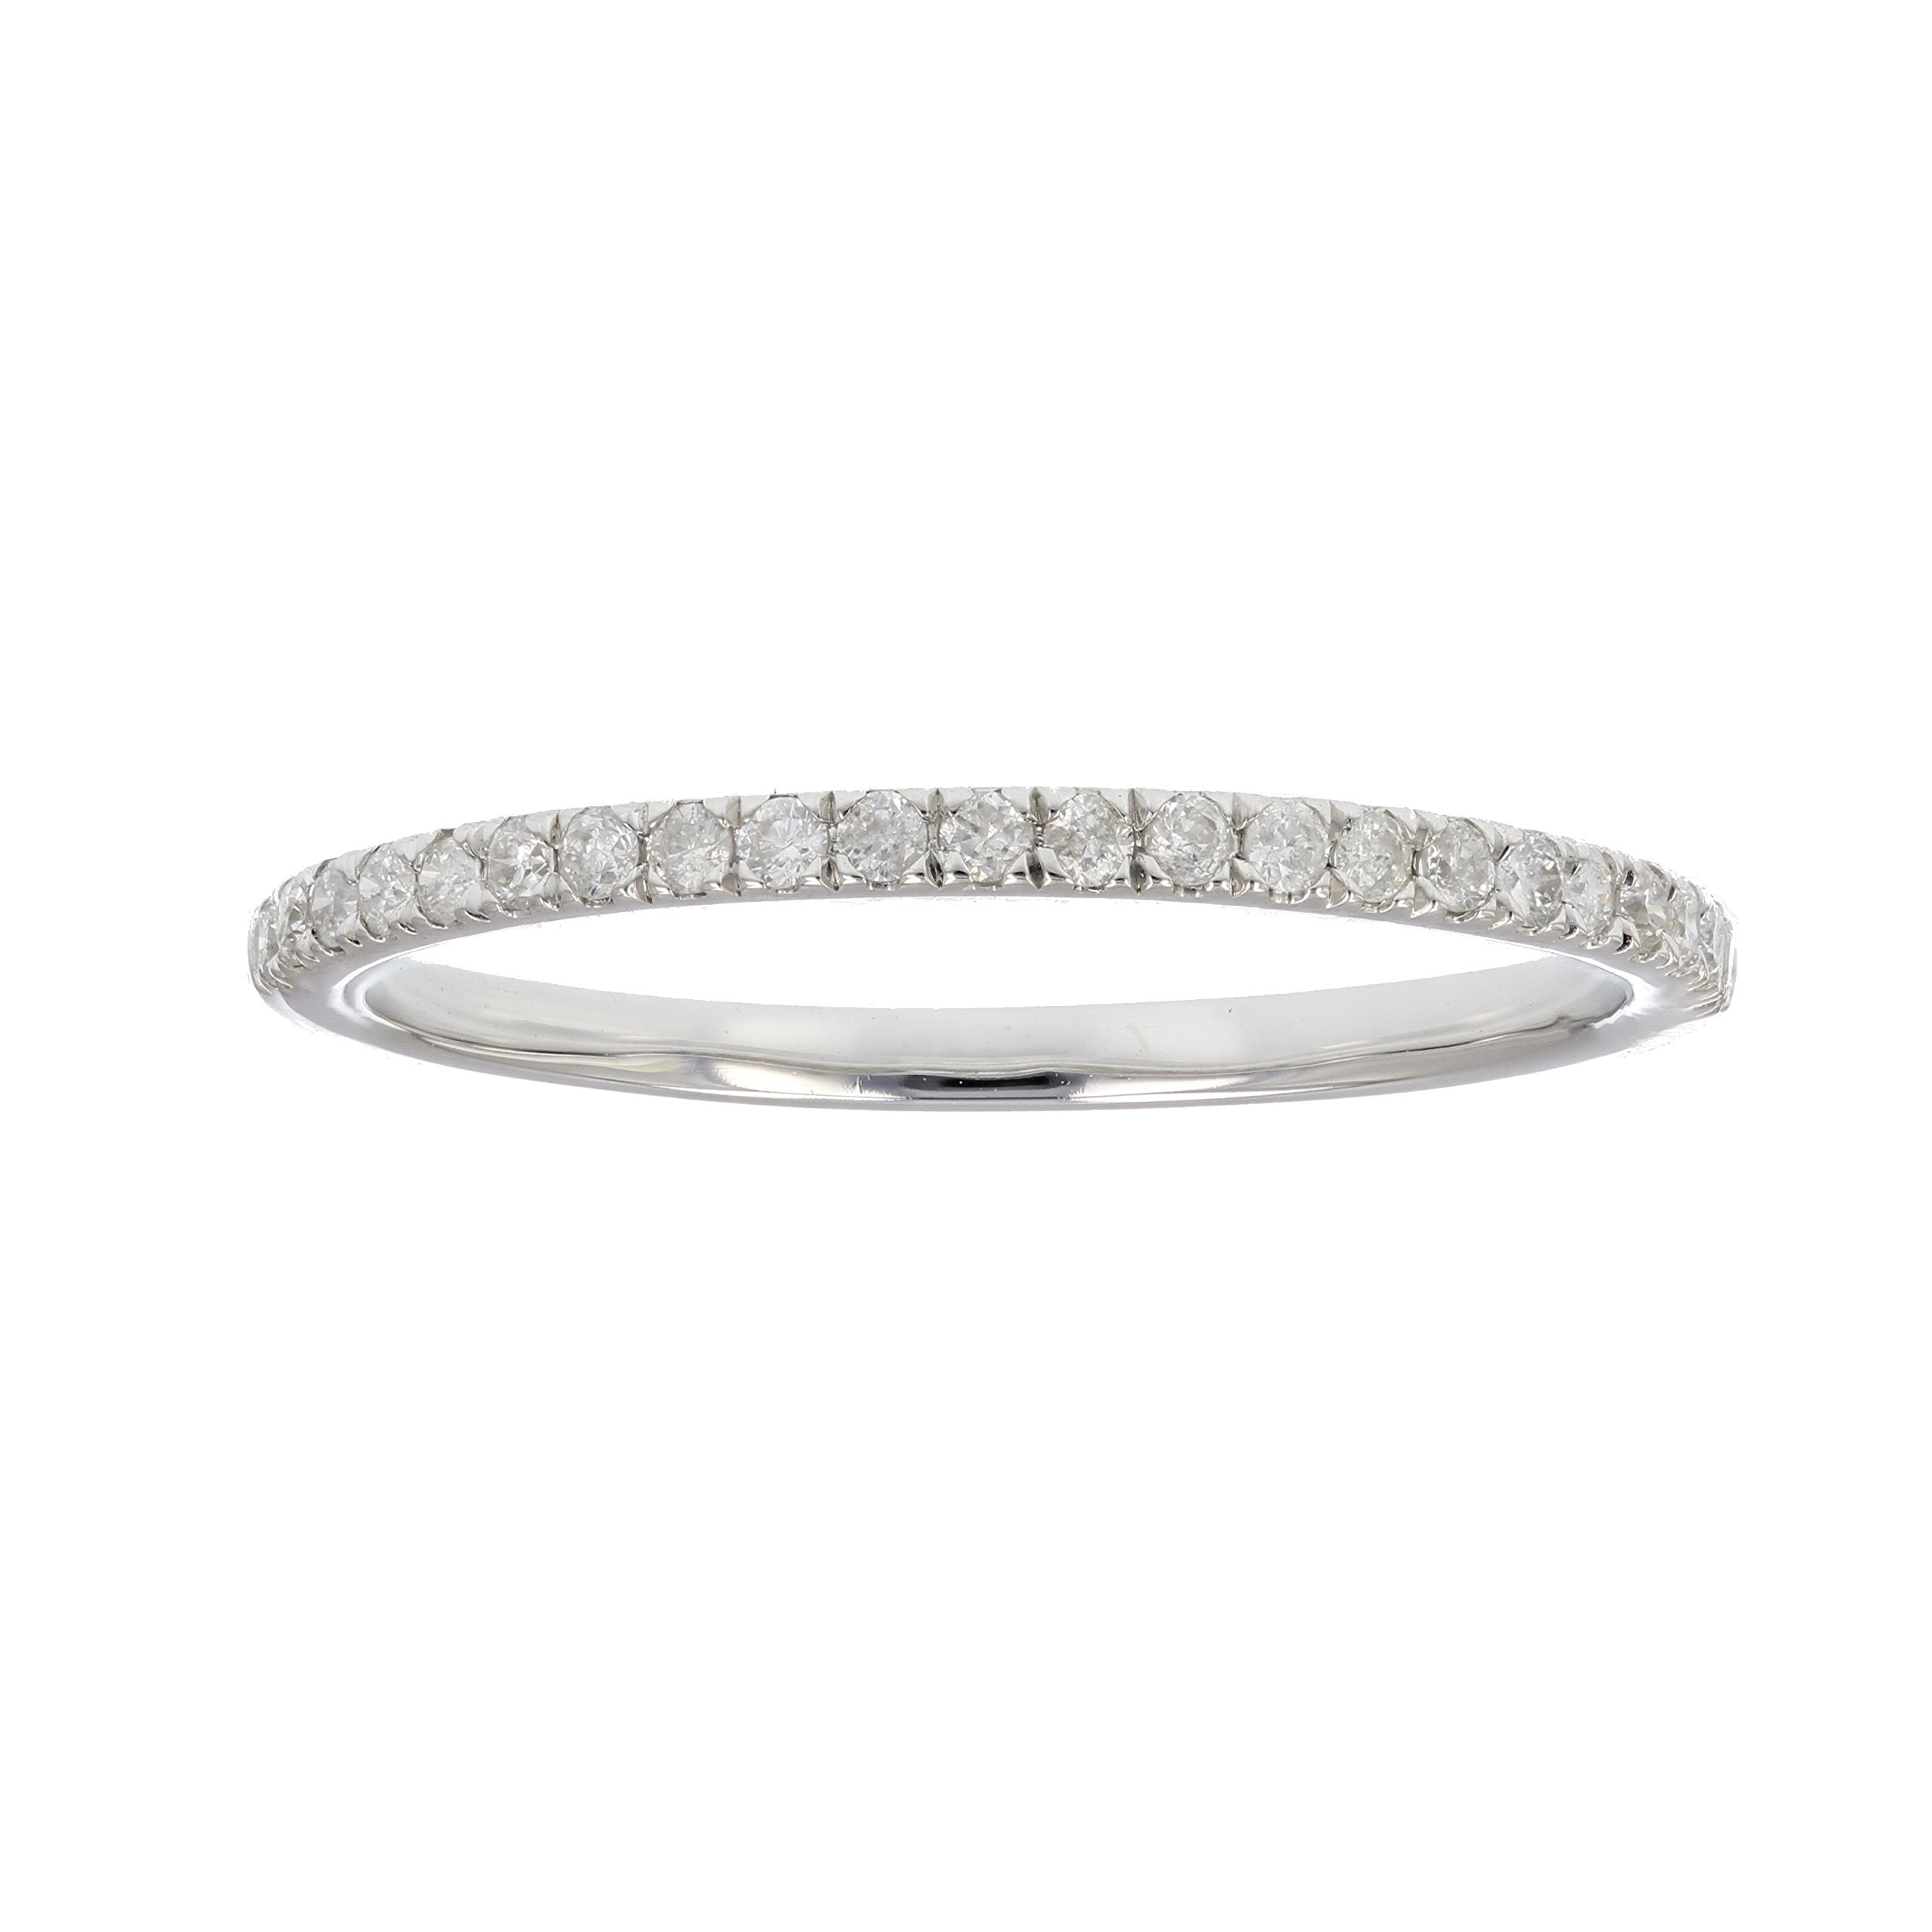 1/6 ctw Pave Diamond Wedding Band in 10K White Gold In Size 5 by Vir Jewels